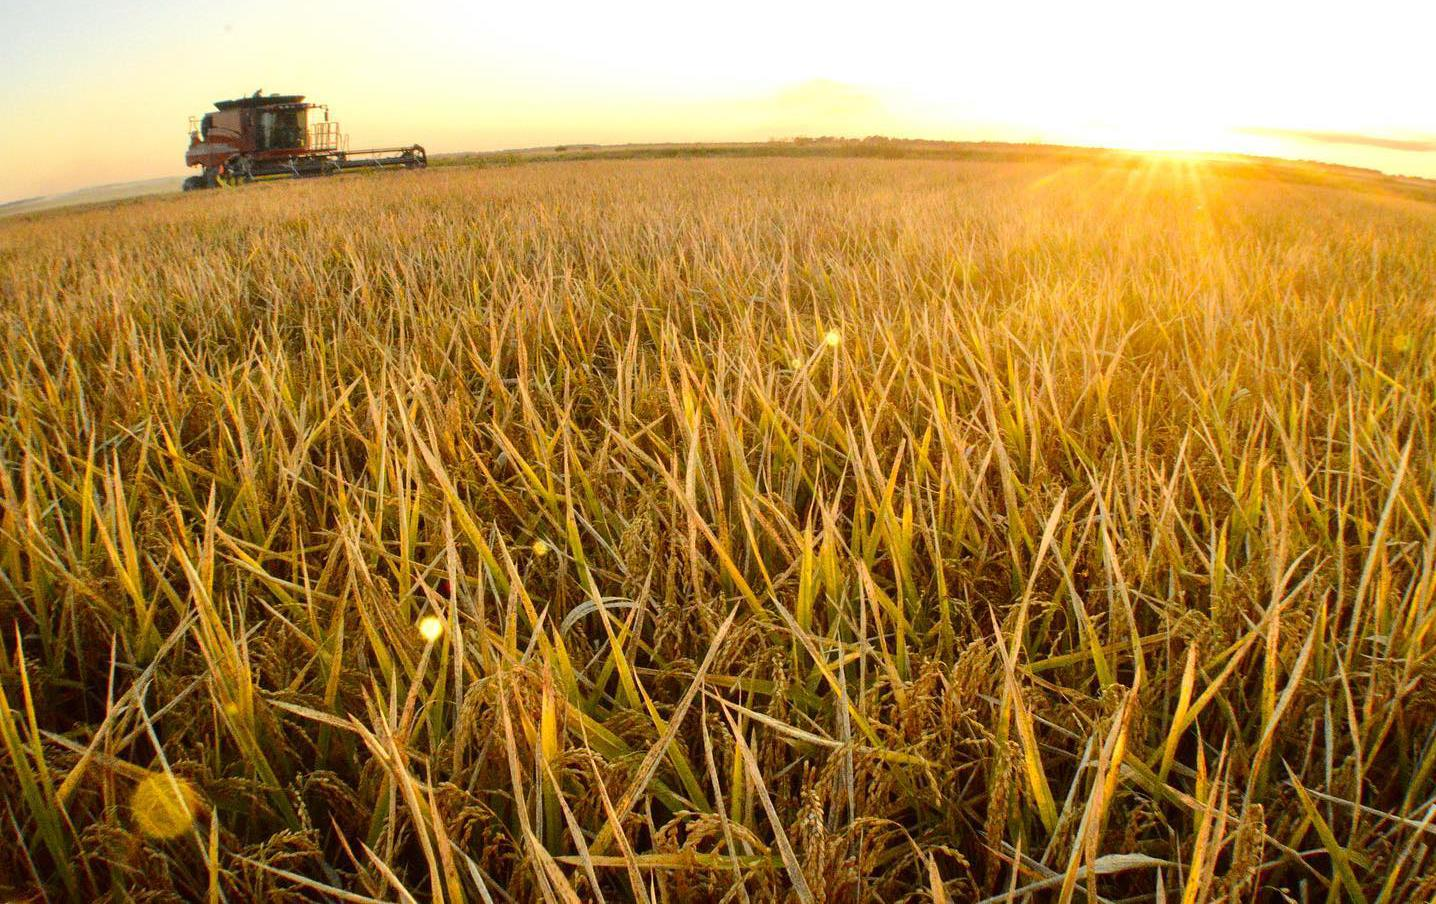 Combine in golden rice field, wide angle shot